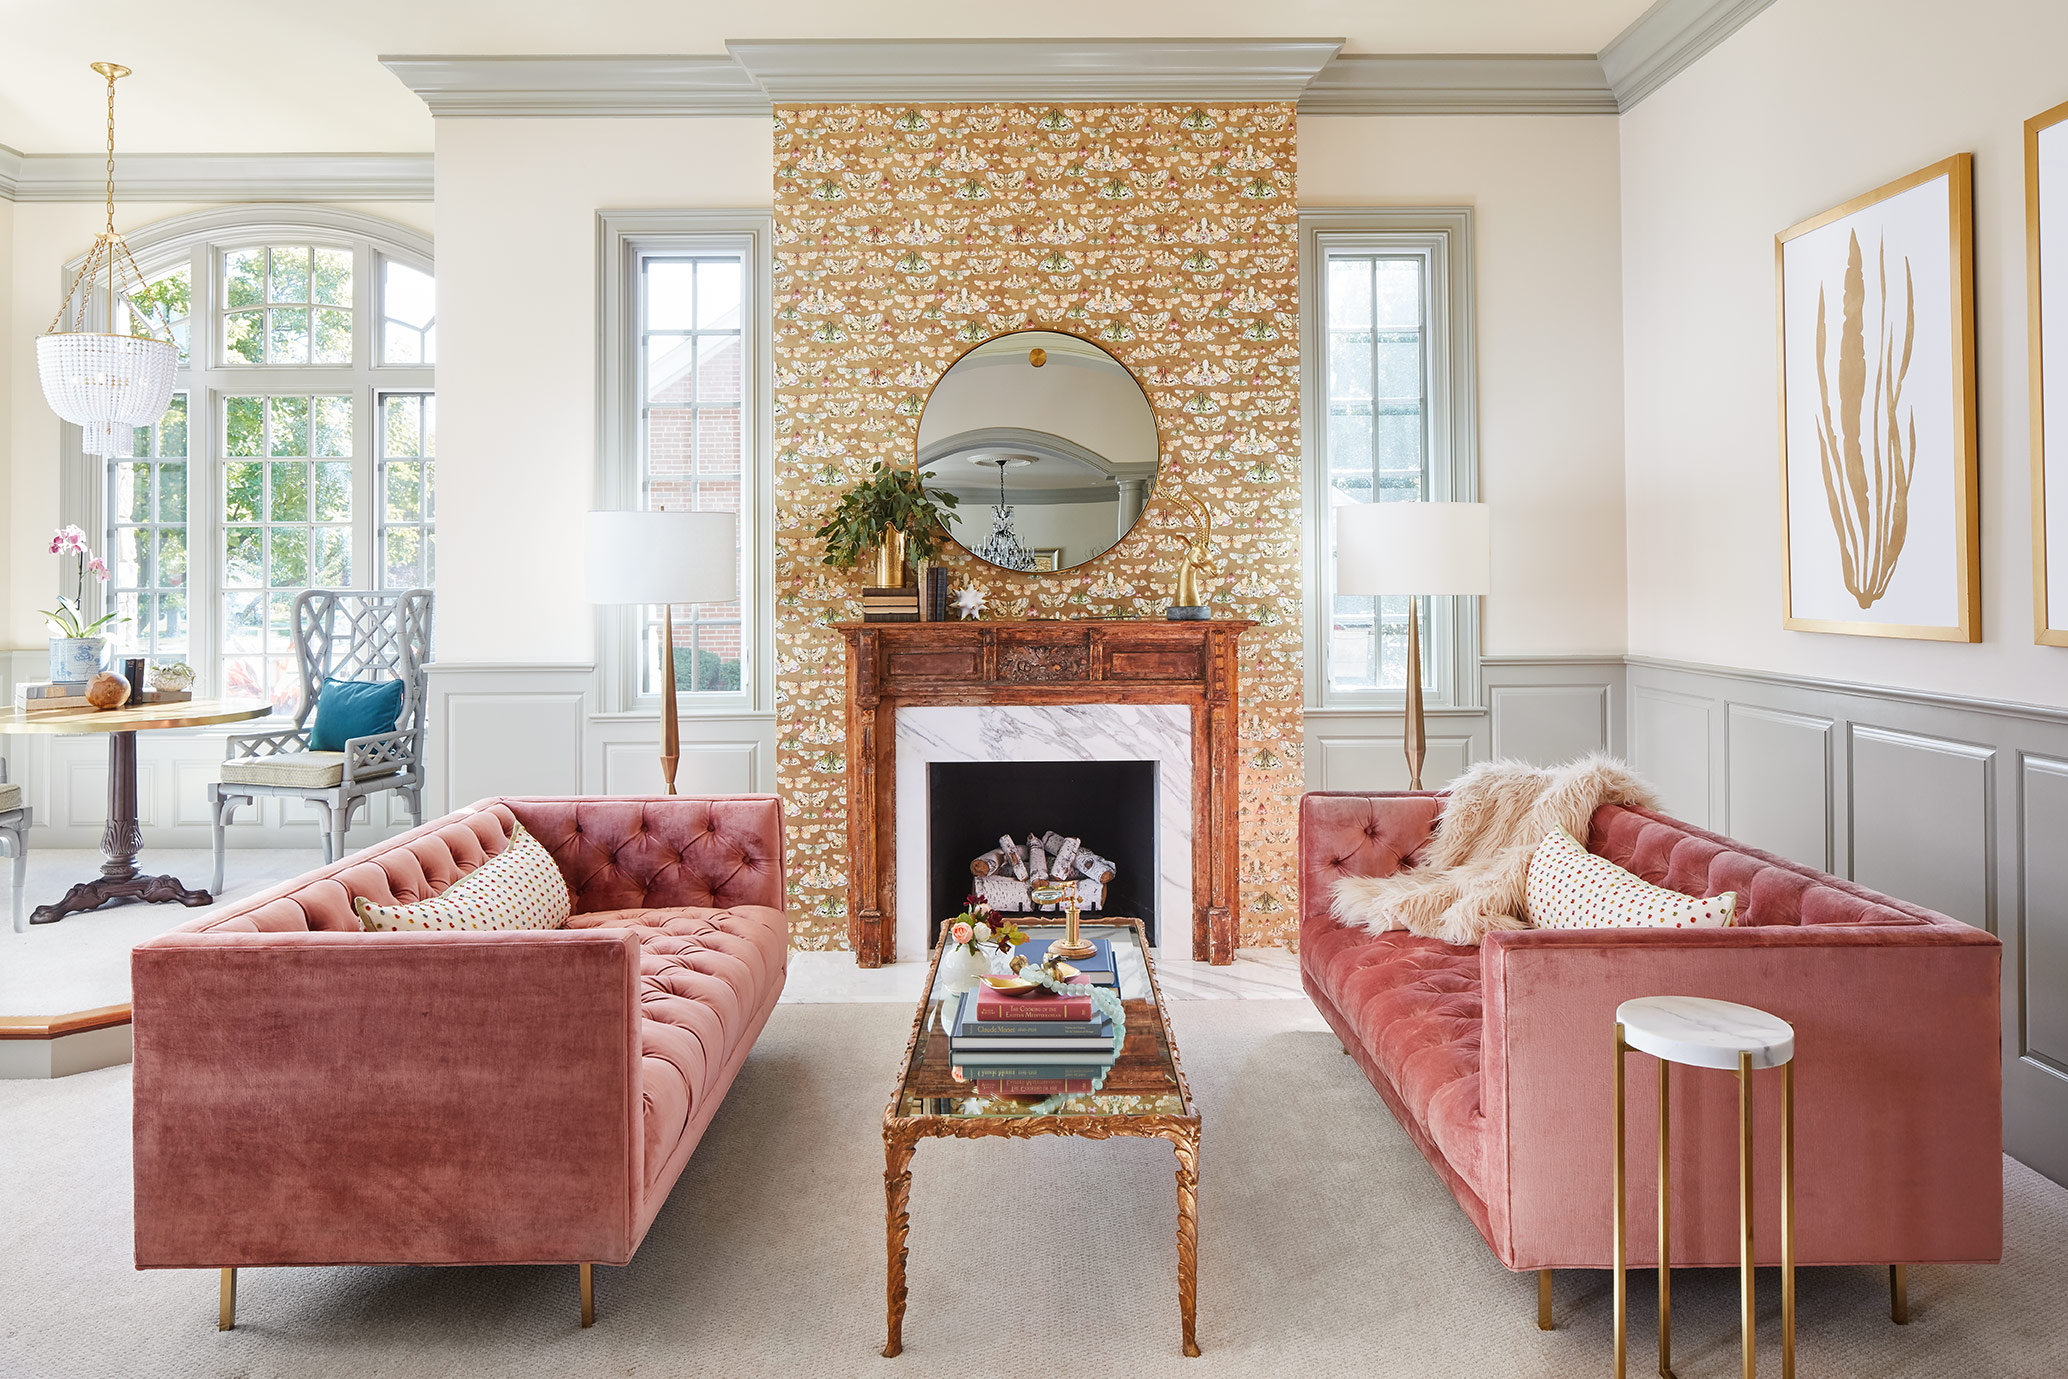 fp tips and ideas for wallpaper in the living room that you can use on your walls